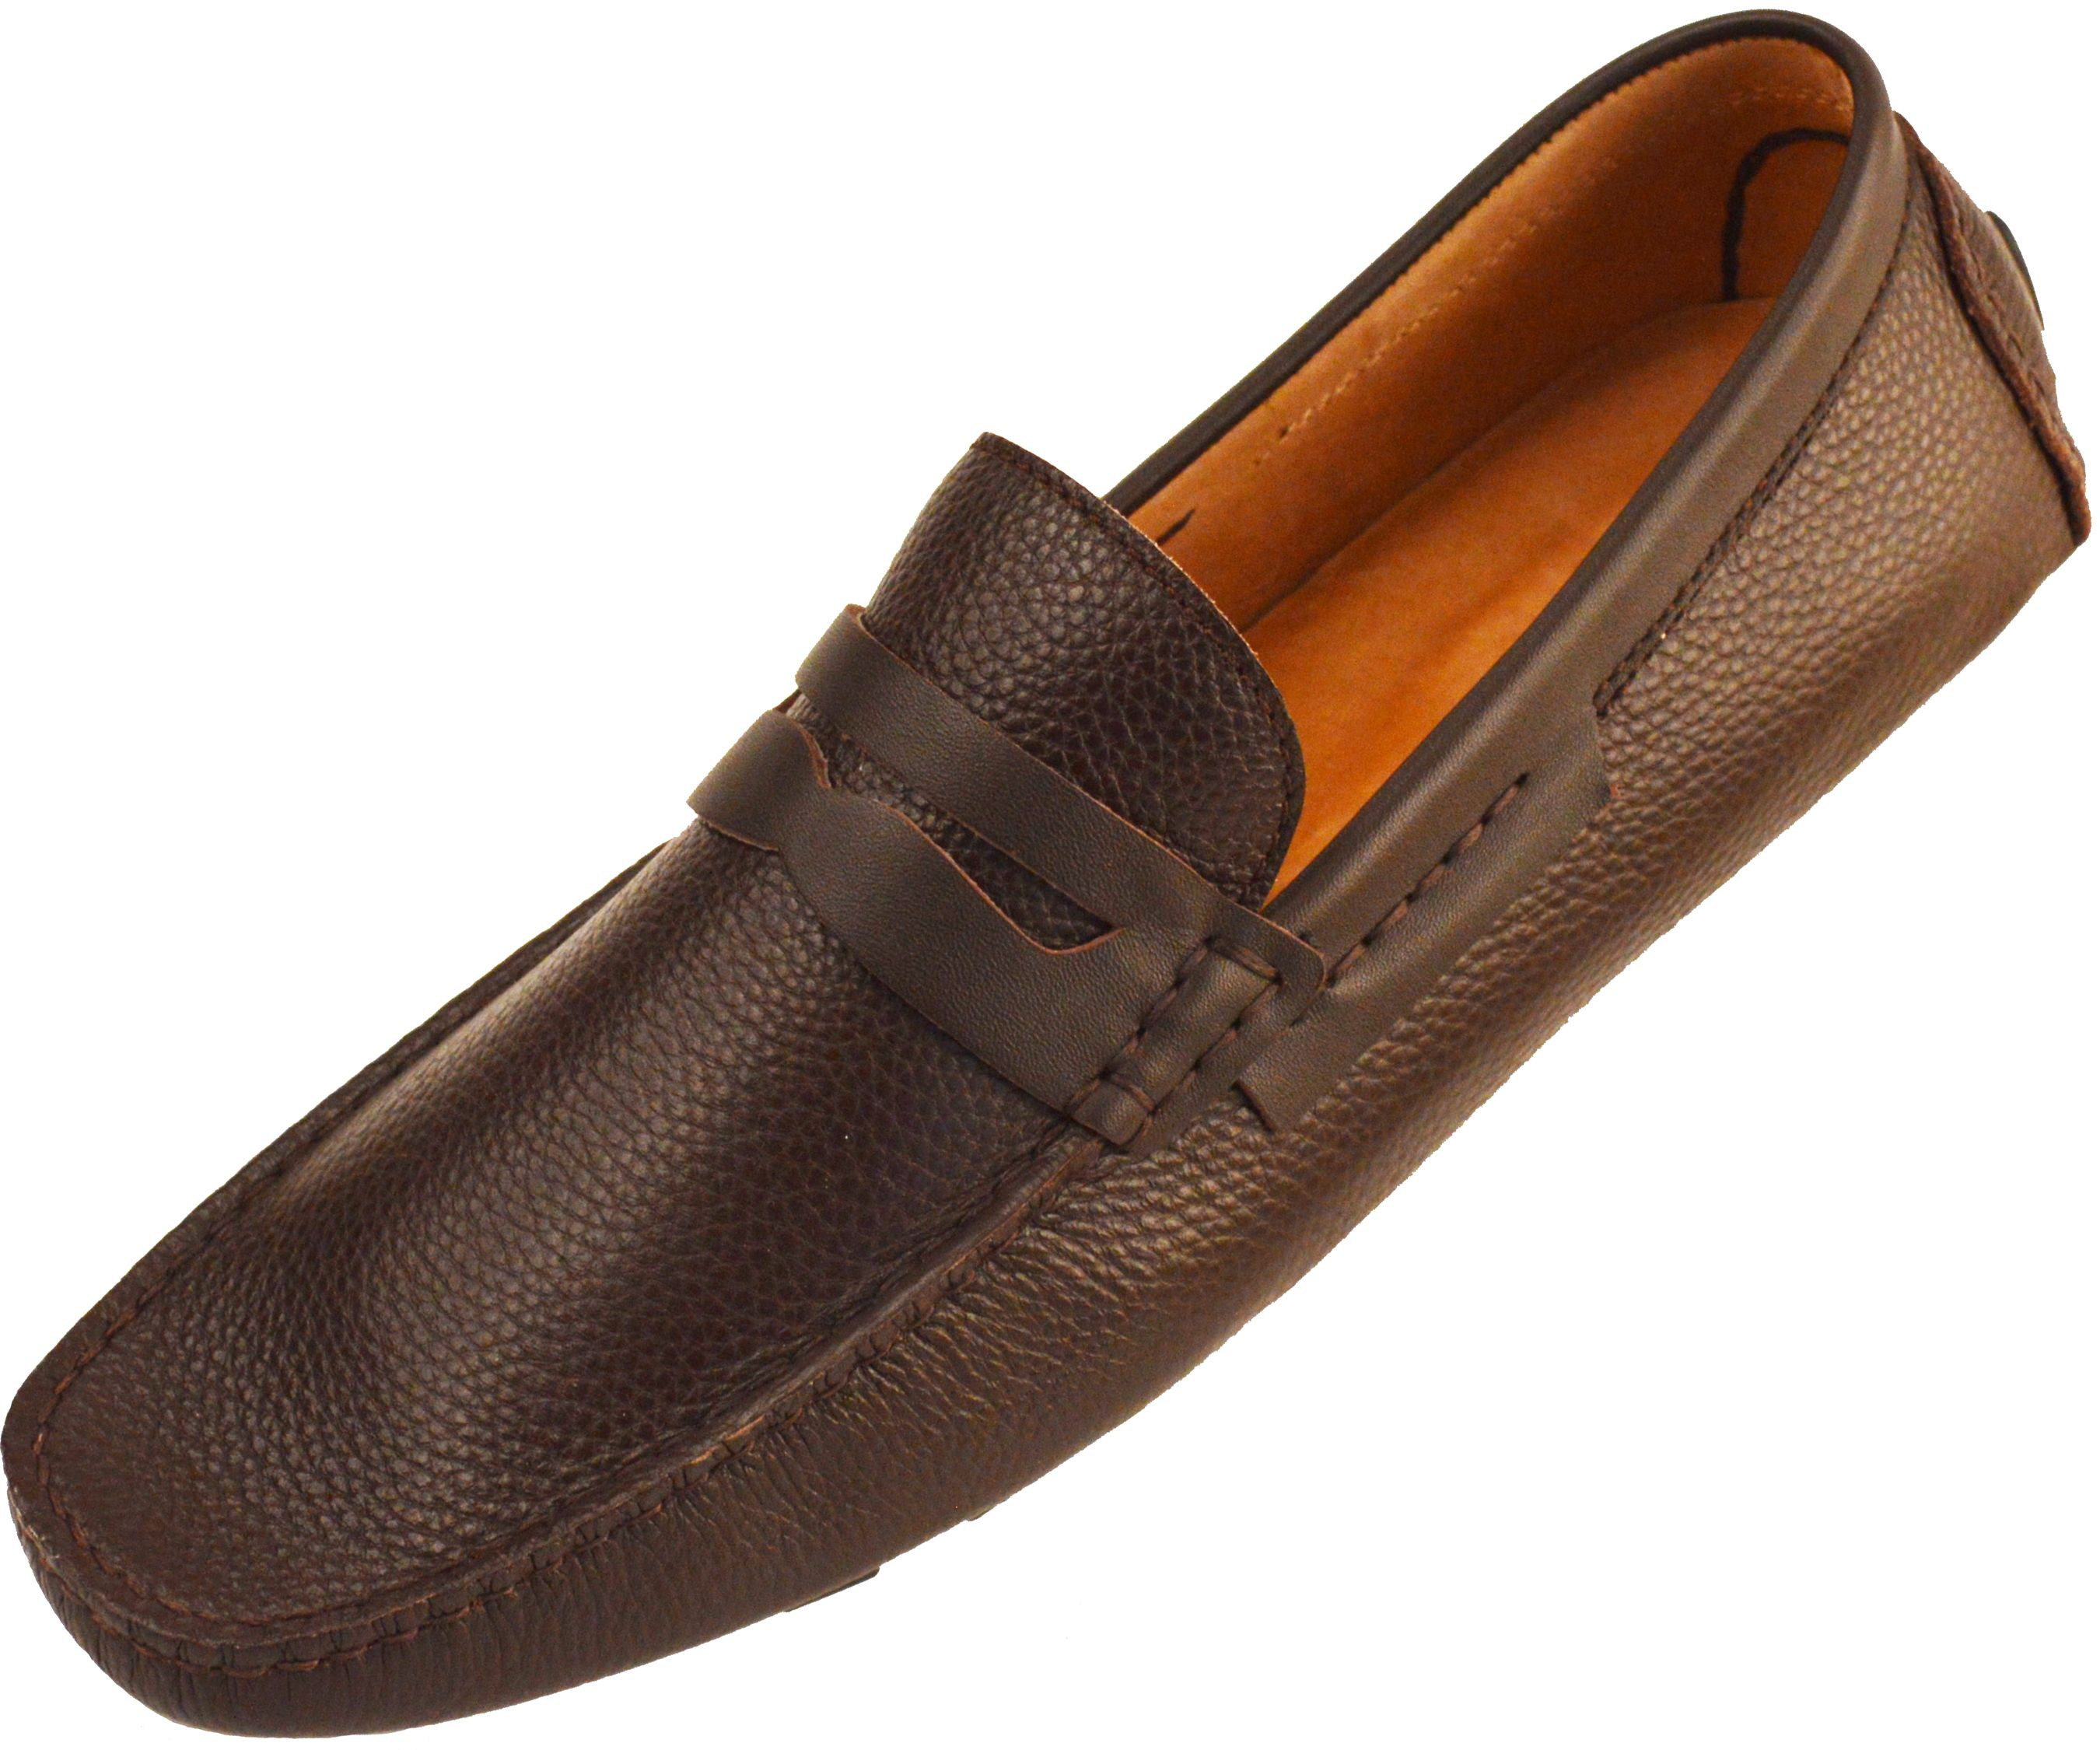 Men's Brown Leather Moccasin Slip On Loafers Causal Shoes Driving Shoes Slippers Shoes